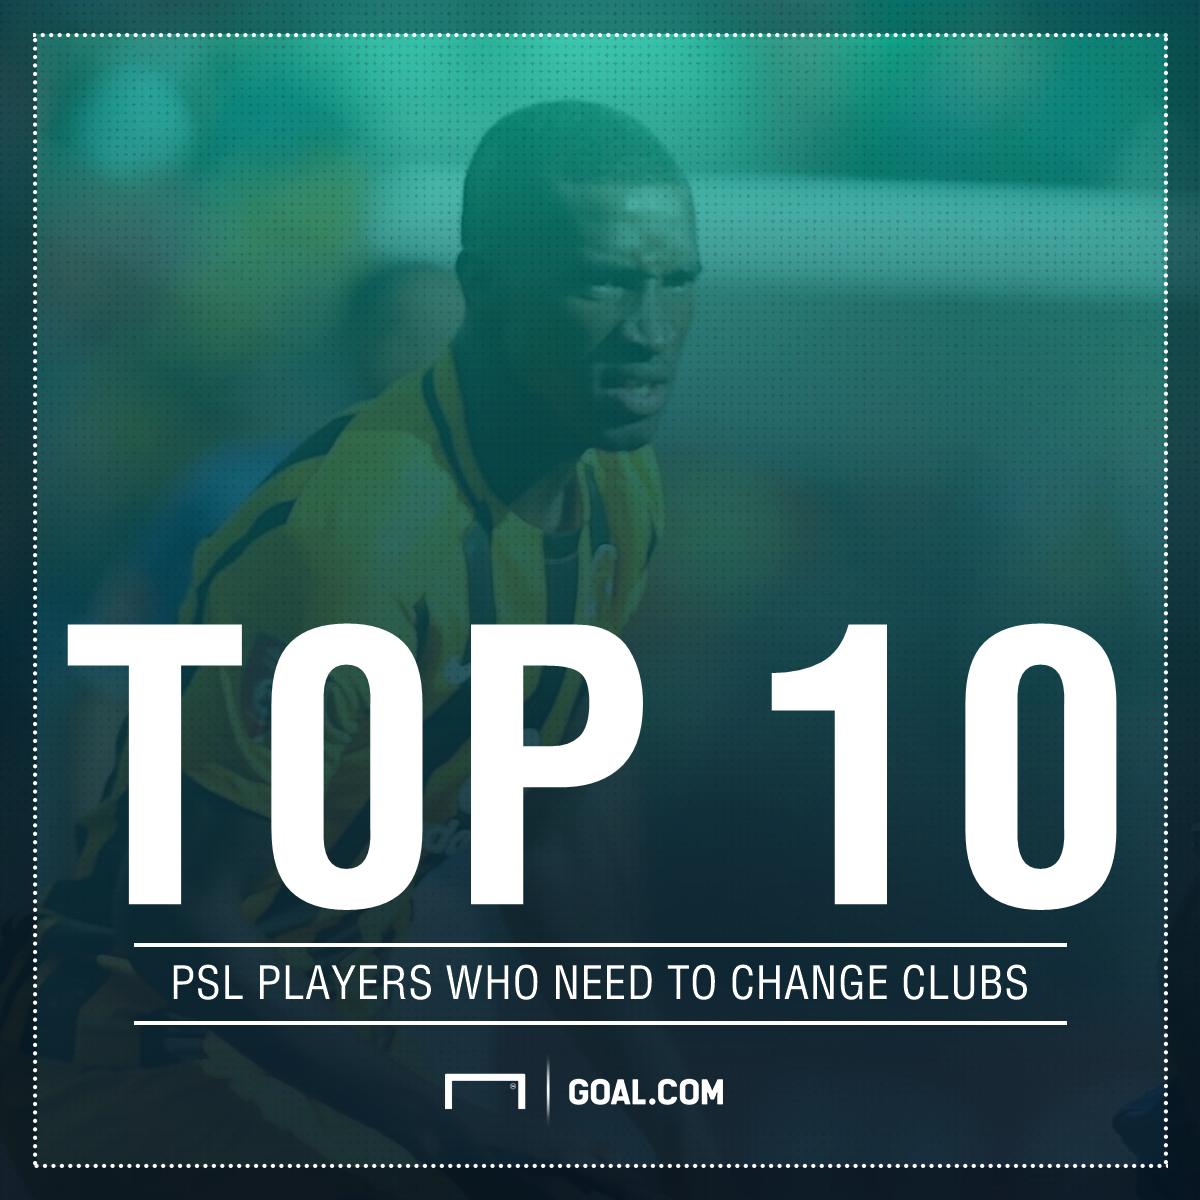 Top 10 PSL players who need to change clubs